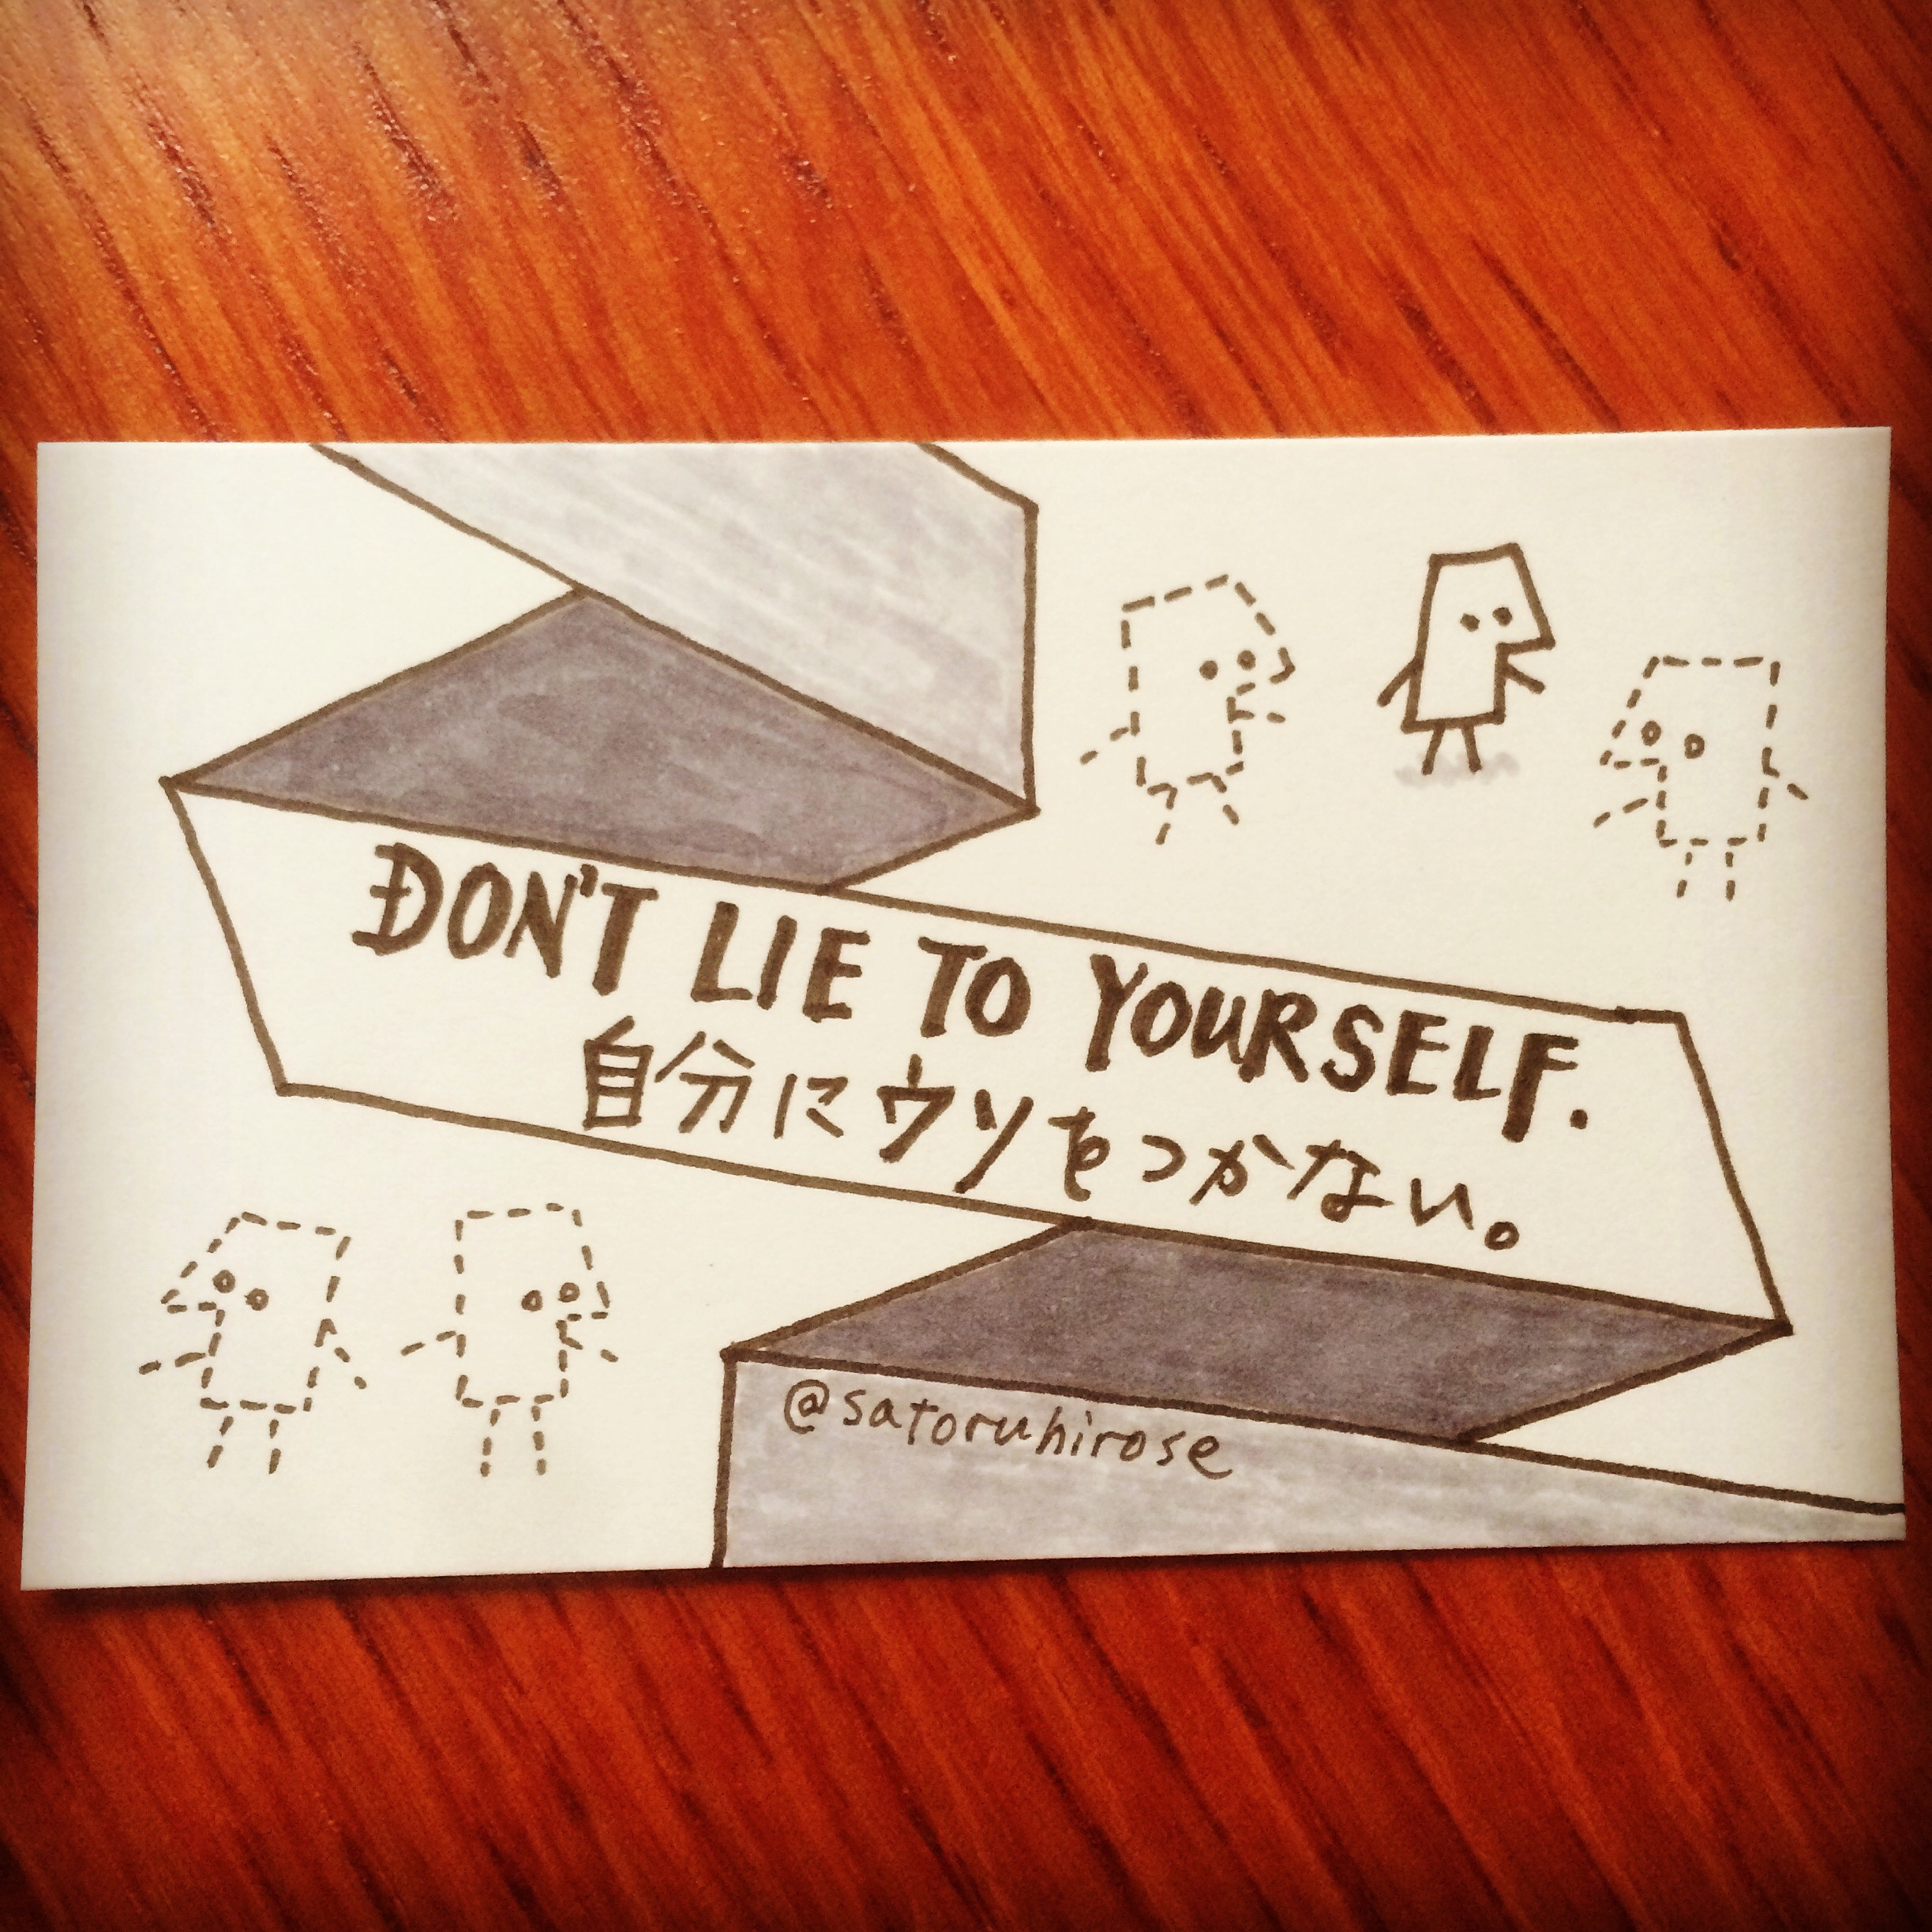 Don't lie to yourself.